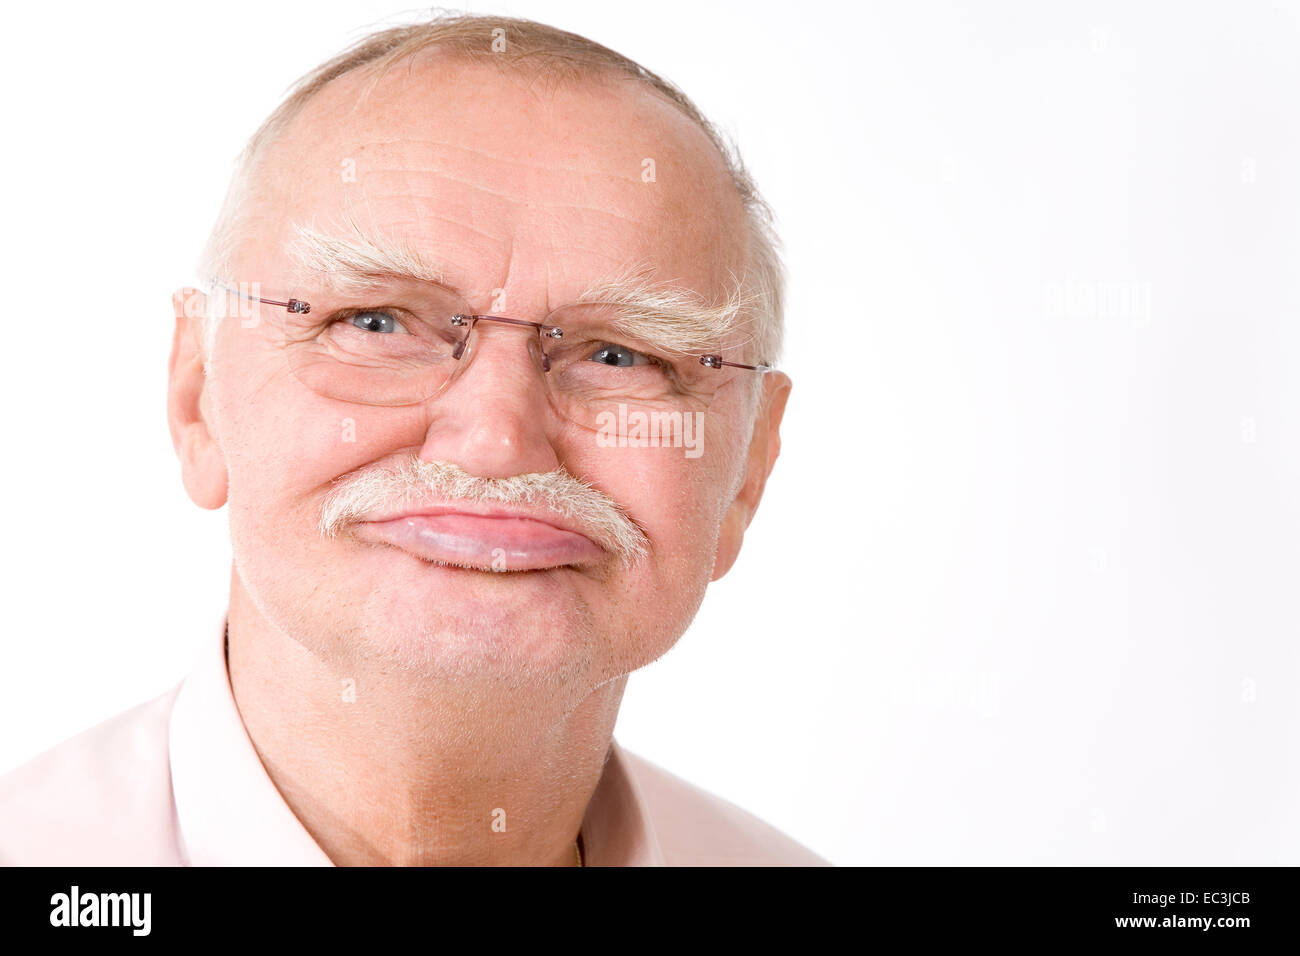 Old Man without Teeth - Stock Image